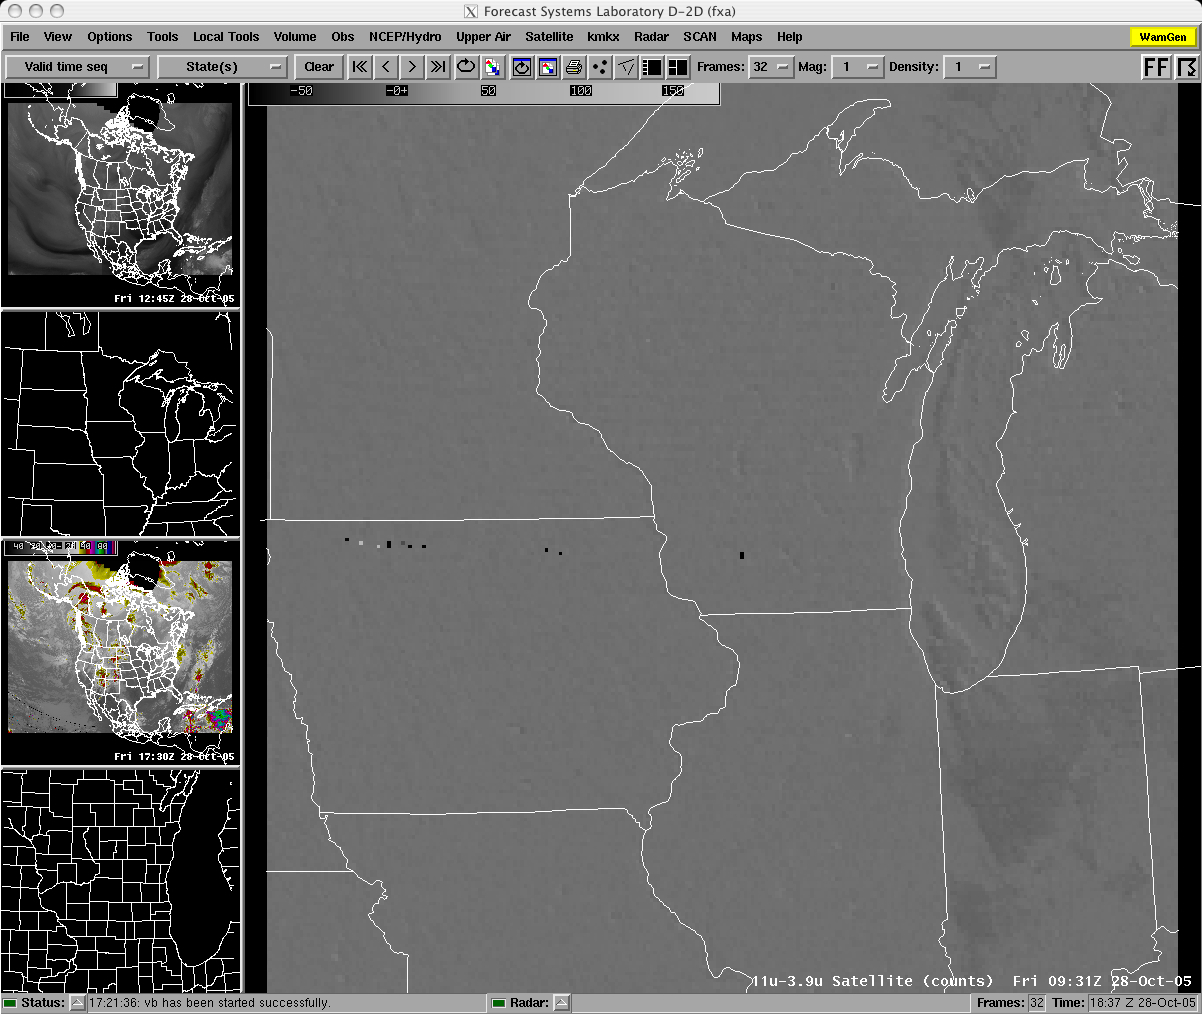 28 Oct 2005 :: River Valley Fog in Wisconsin Zoomed Map Of Ooo on map of yy, map of bb, map of ott, map of ag, map of fun, map of ww, map of hh, map of black, map of ee, map of amazon, map of ora, map of ccc, map of open, map of sol, map of ole, map of java, map of time, map of uu, map of om, map of un,